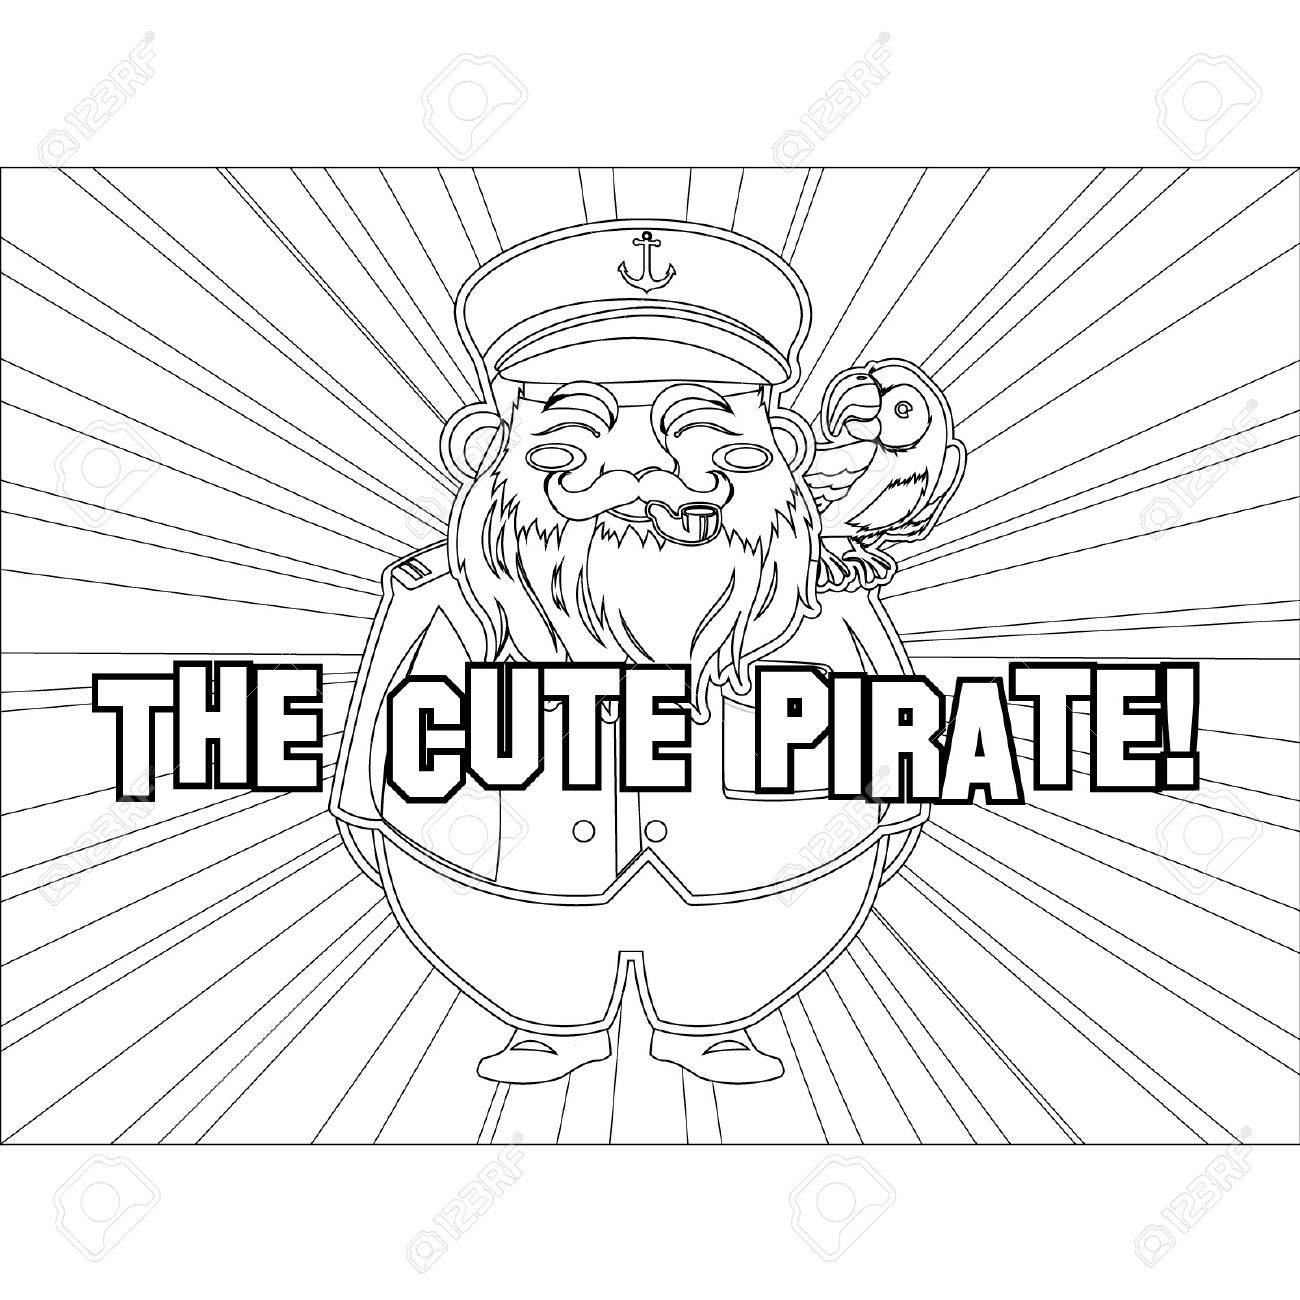 Outlined Cute Captain Pirate Stock Vector - 14799004